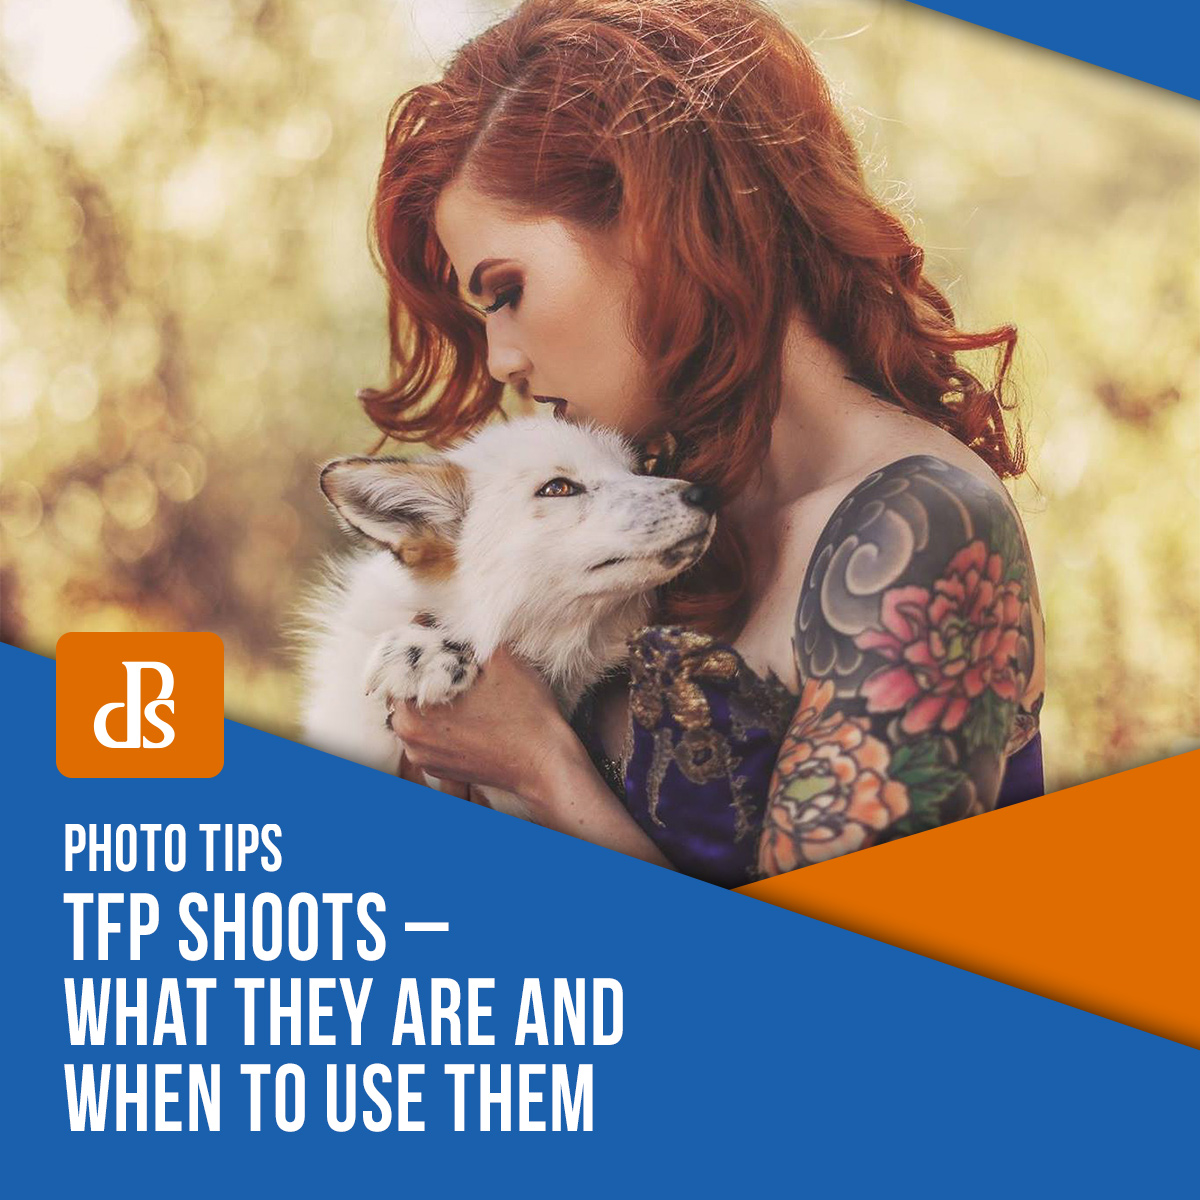 tfp-shoots-in-photography